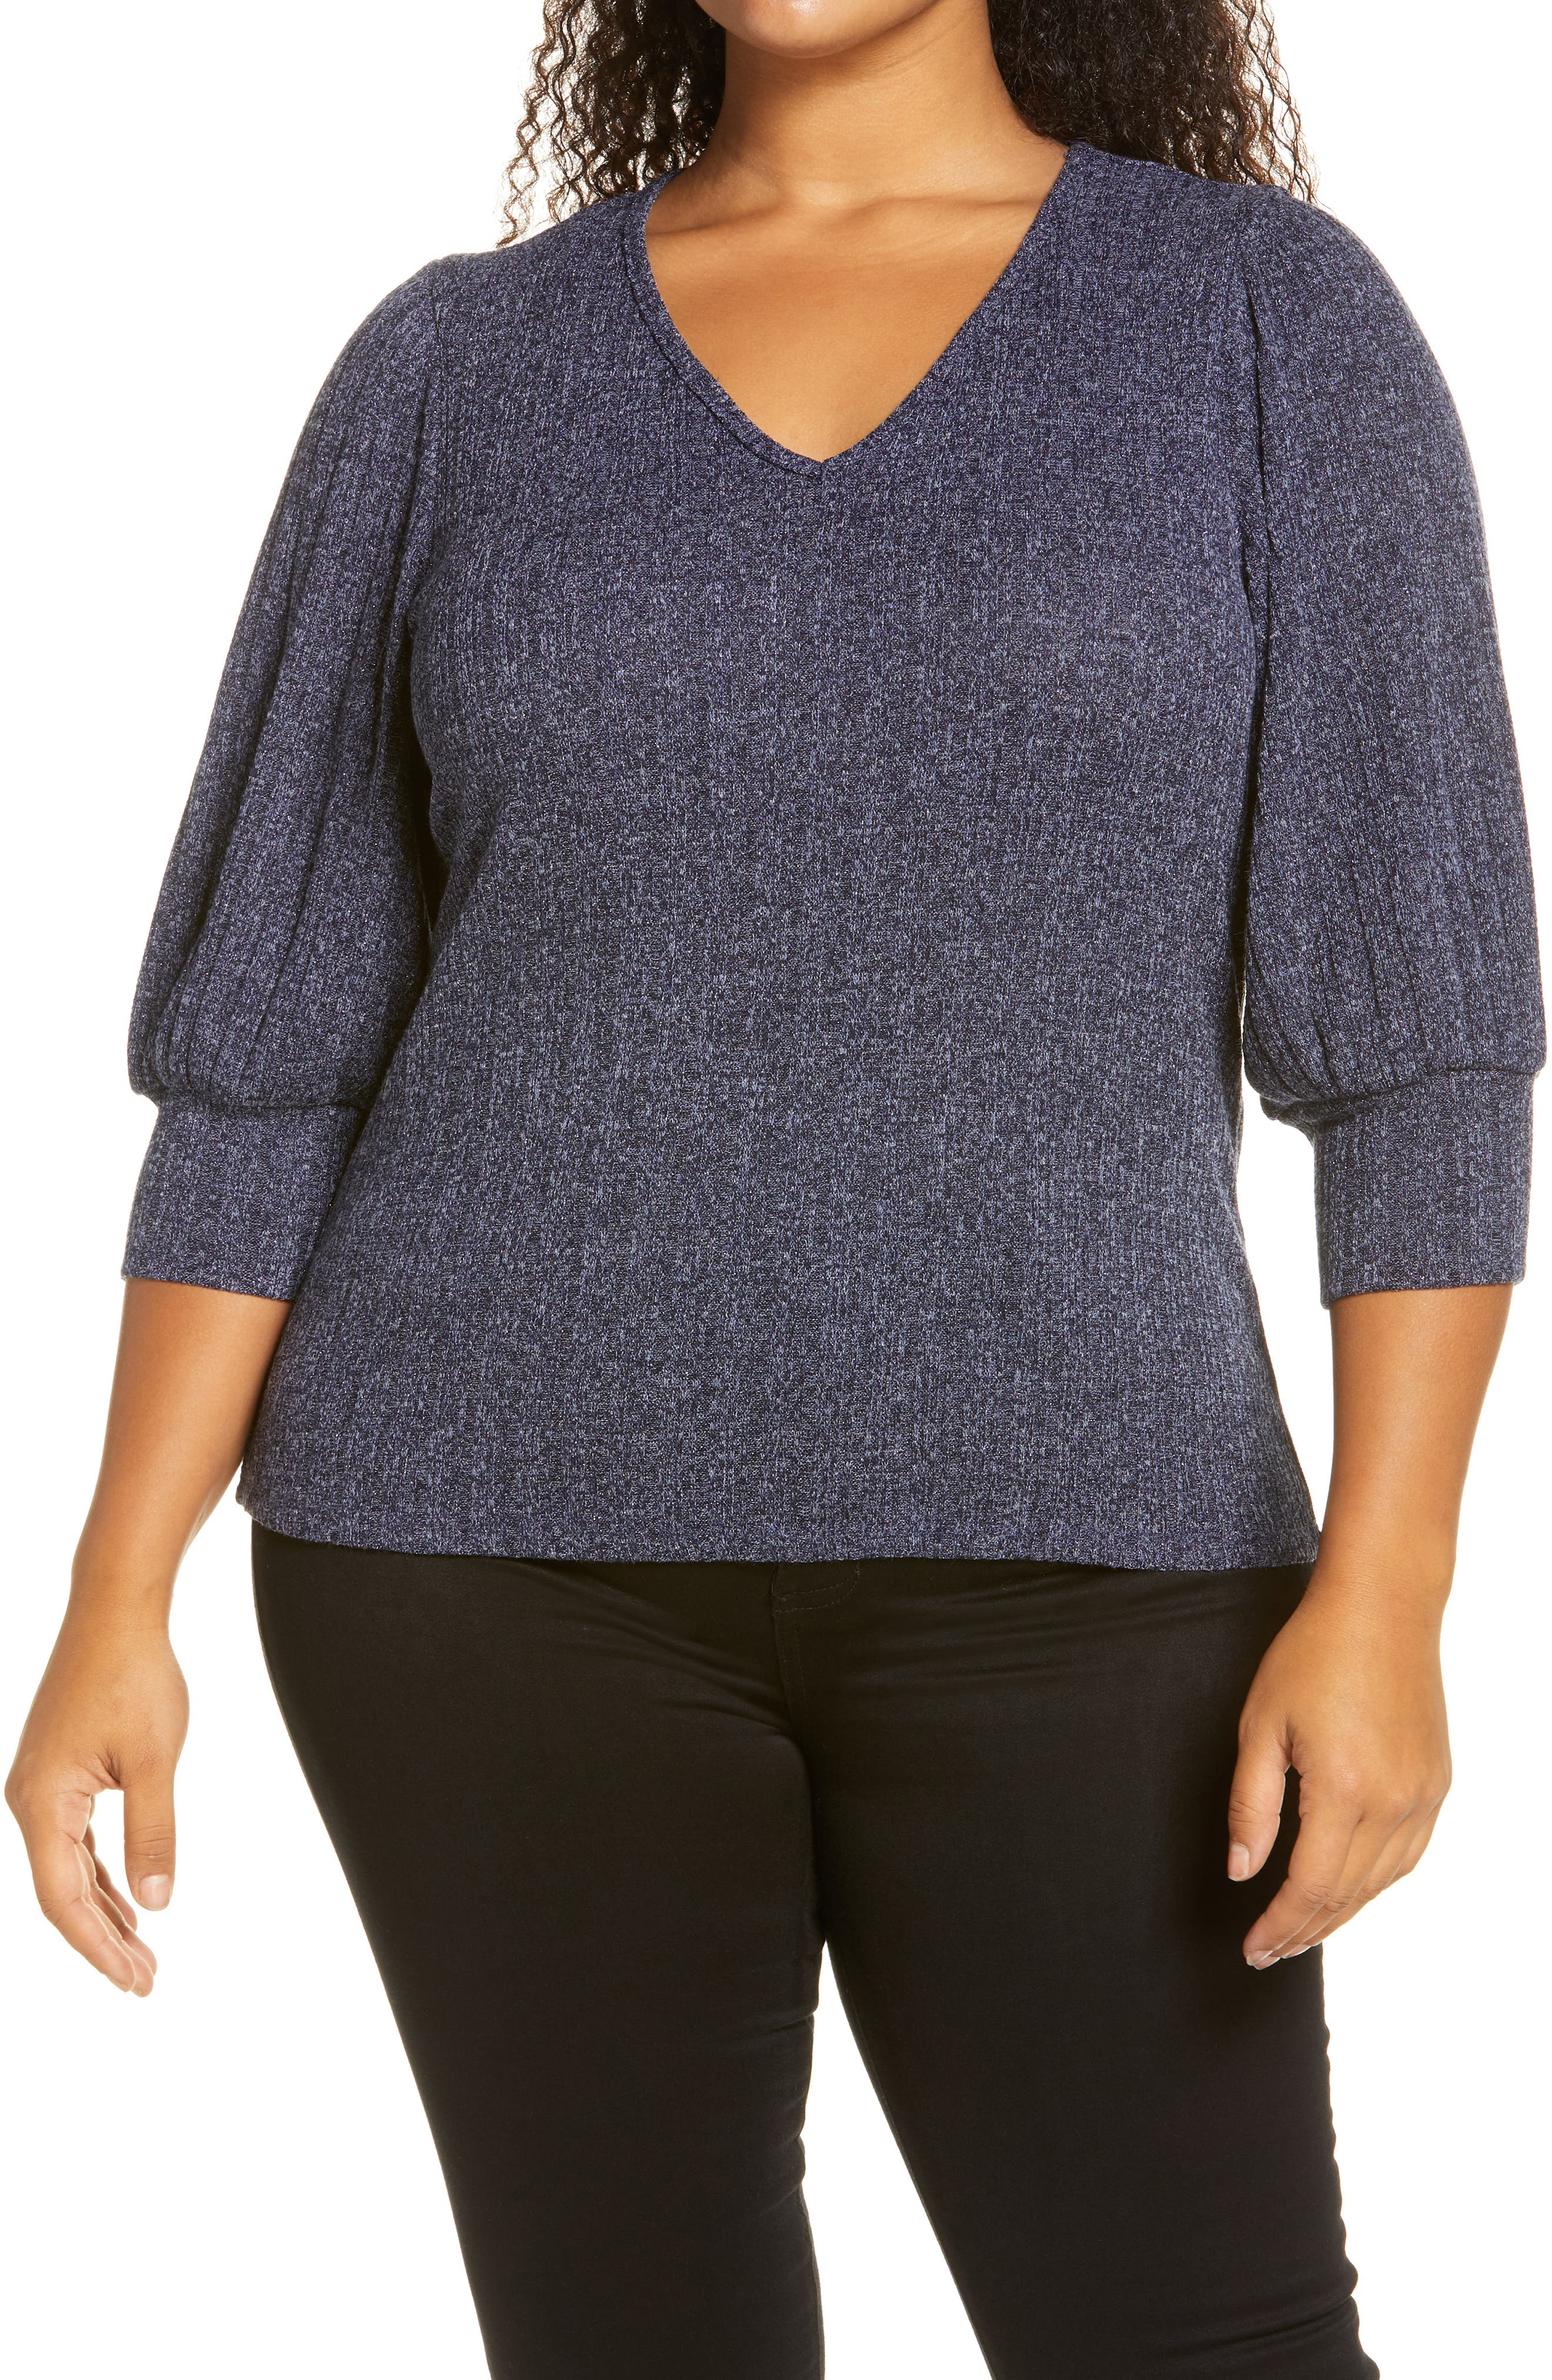 Sparkling metallic shimmer elevates this day-to-night pullover styled with lightly billowed three-quarter sleeves. Style Name: Bobeau Balloon Sleeve Metallic Knit Top (Plus Size). Style Number: 6106011. Available in stores.